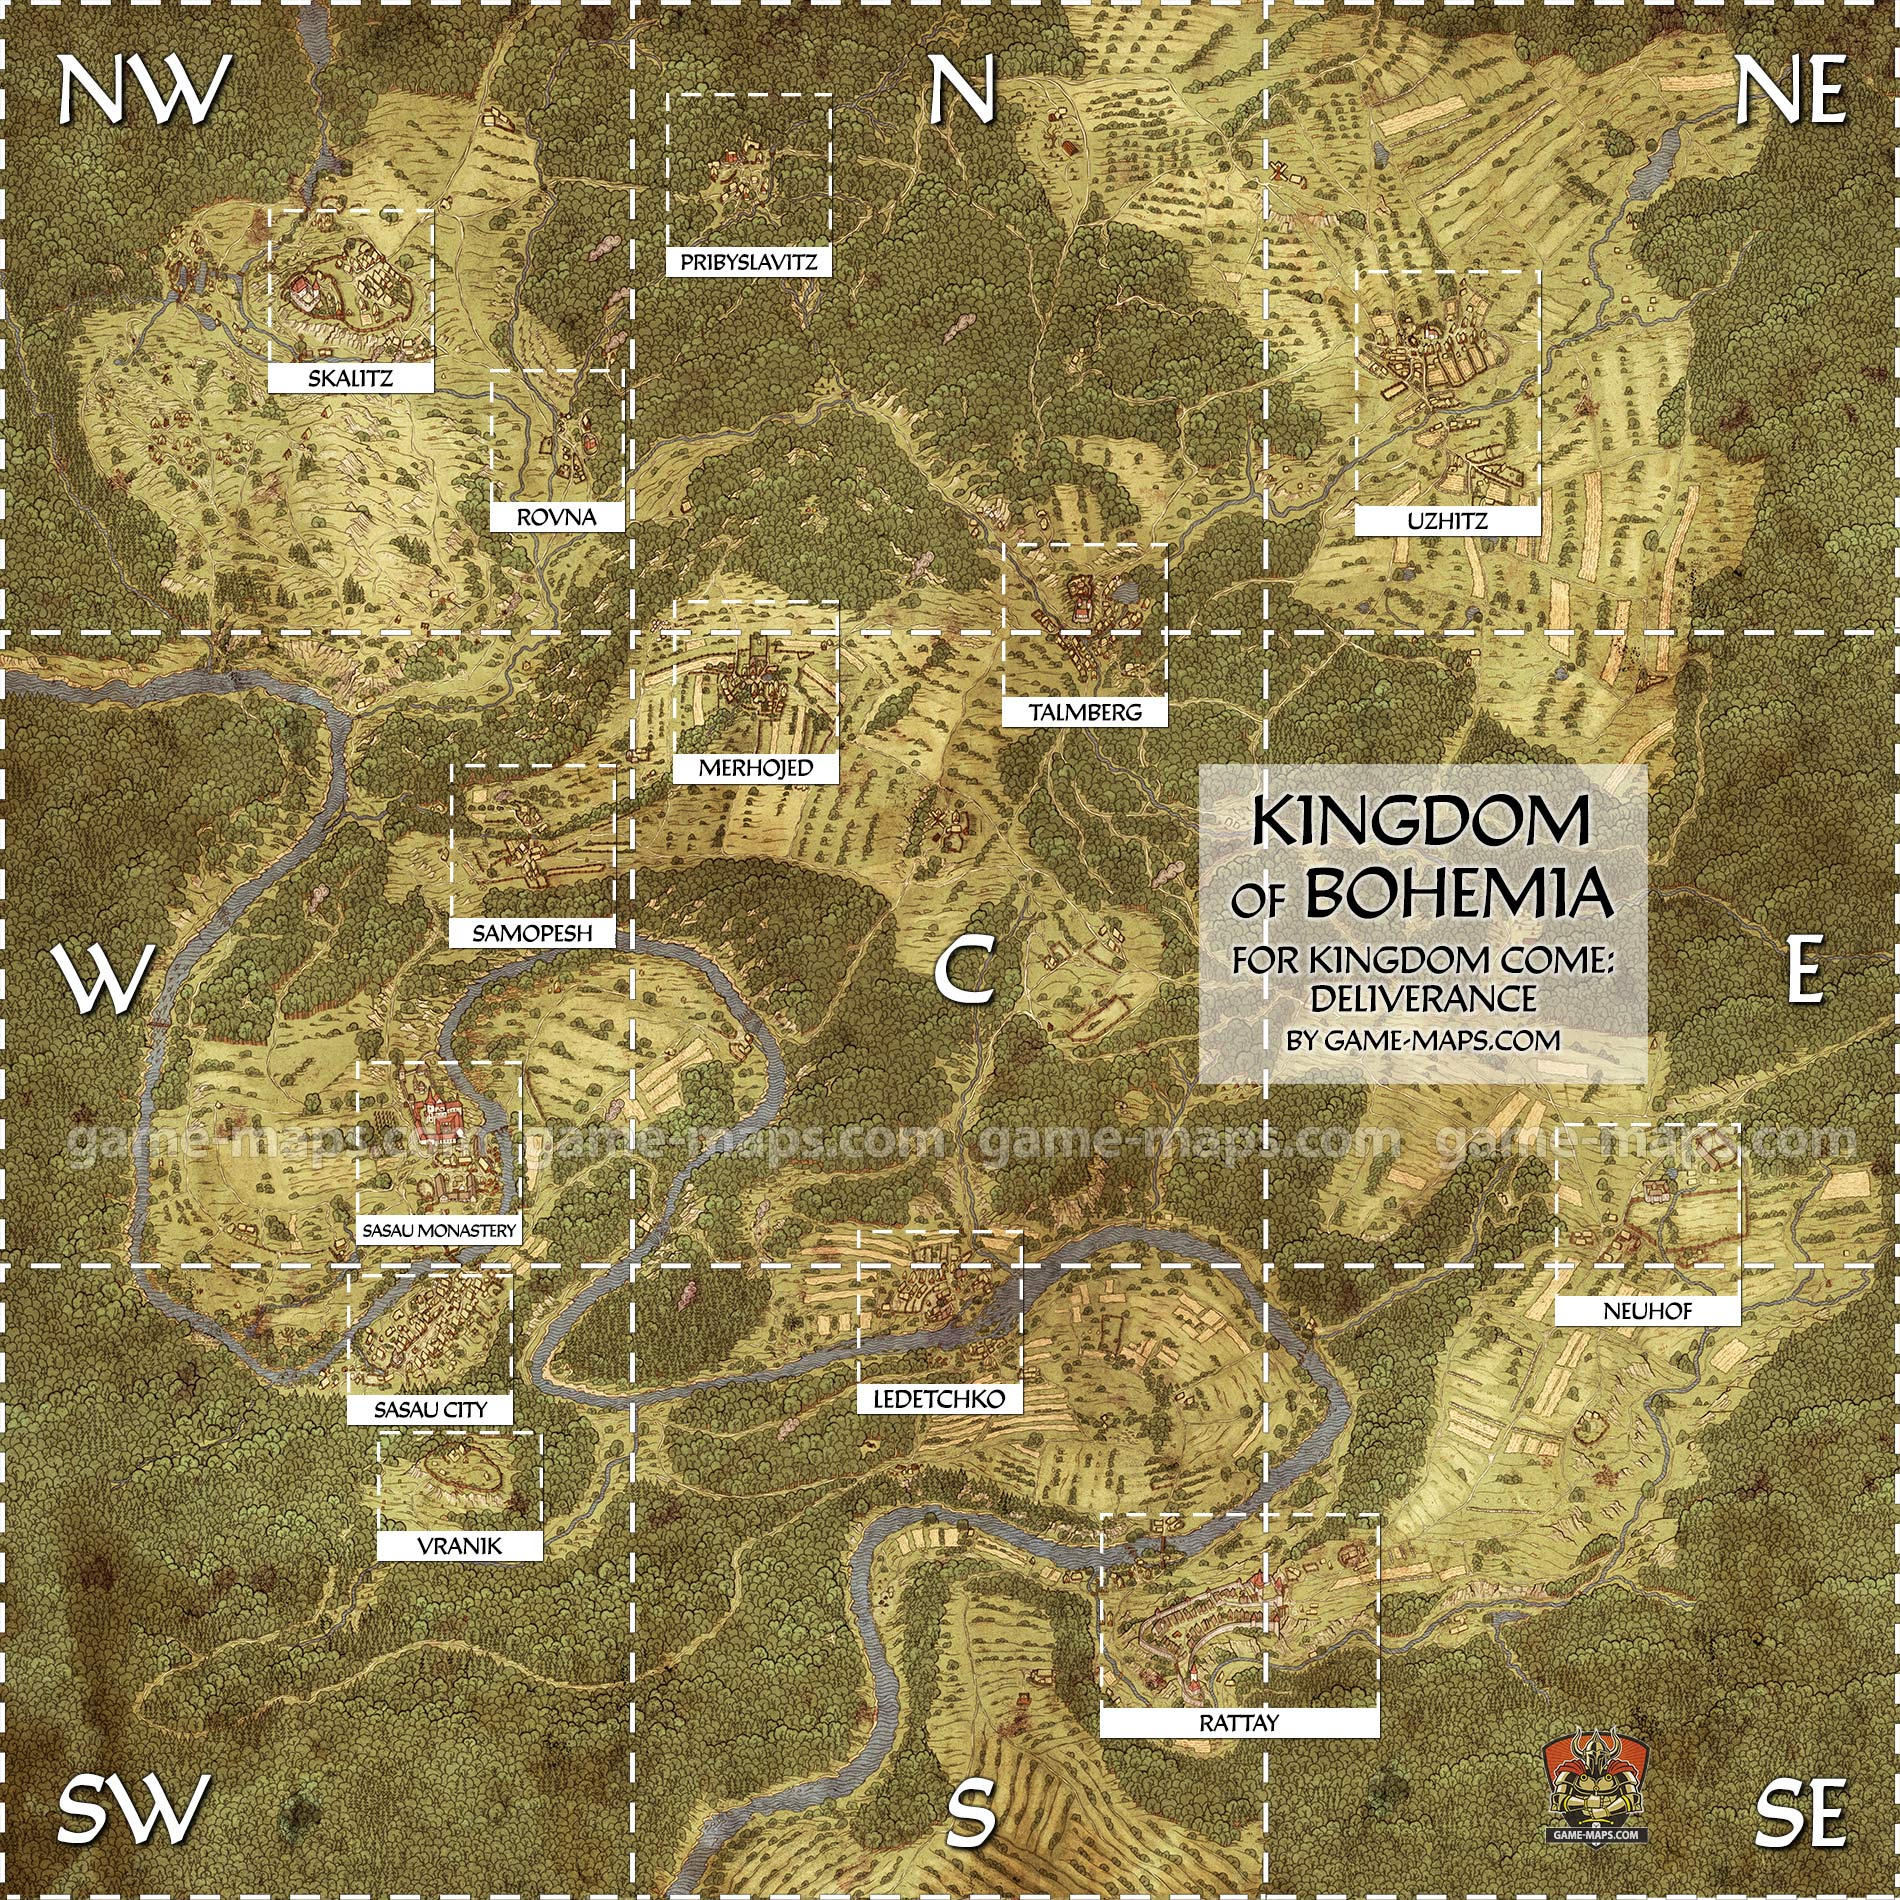 Kingdom come deliverance world map game maps bohemia world map for kingdom come deliverance gumiabroncs Images